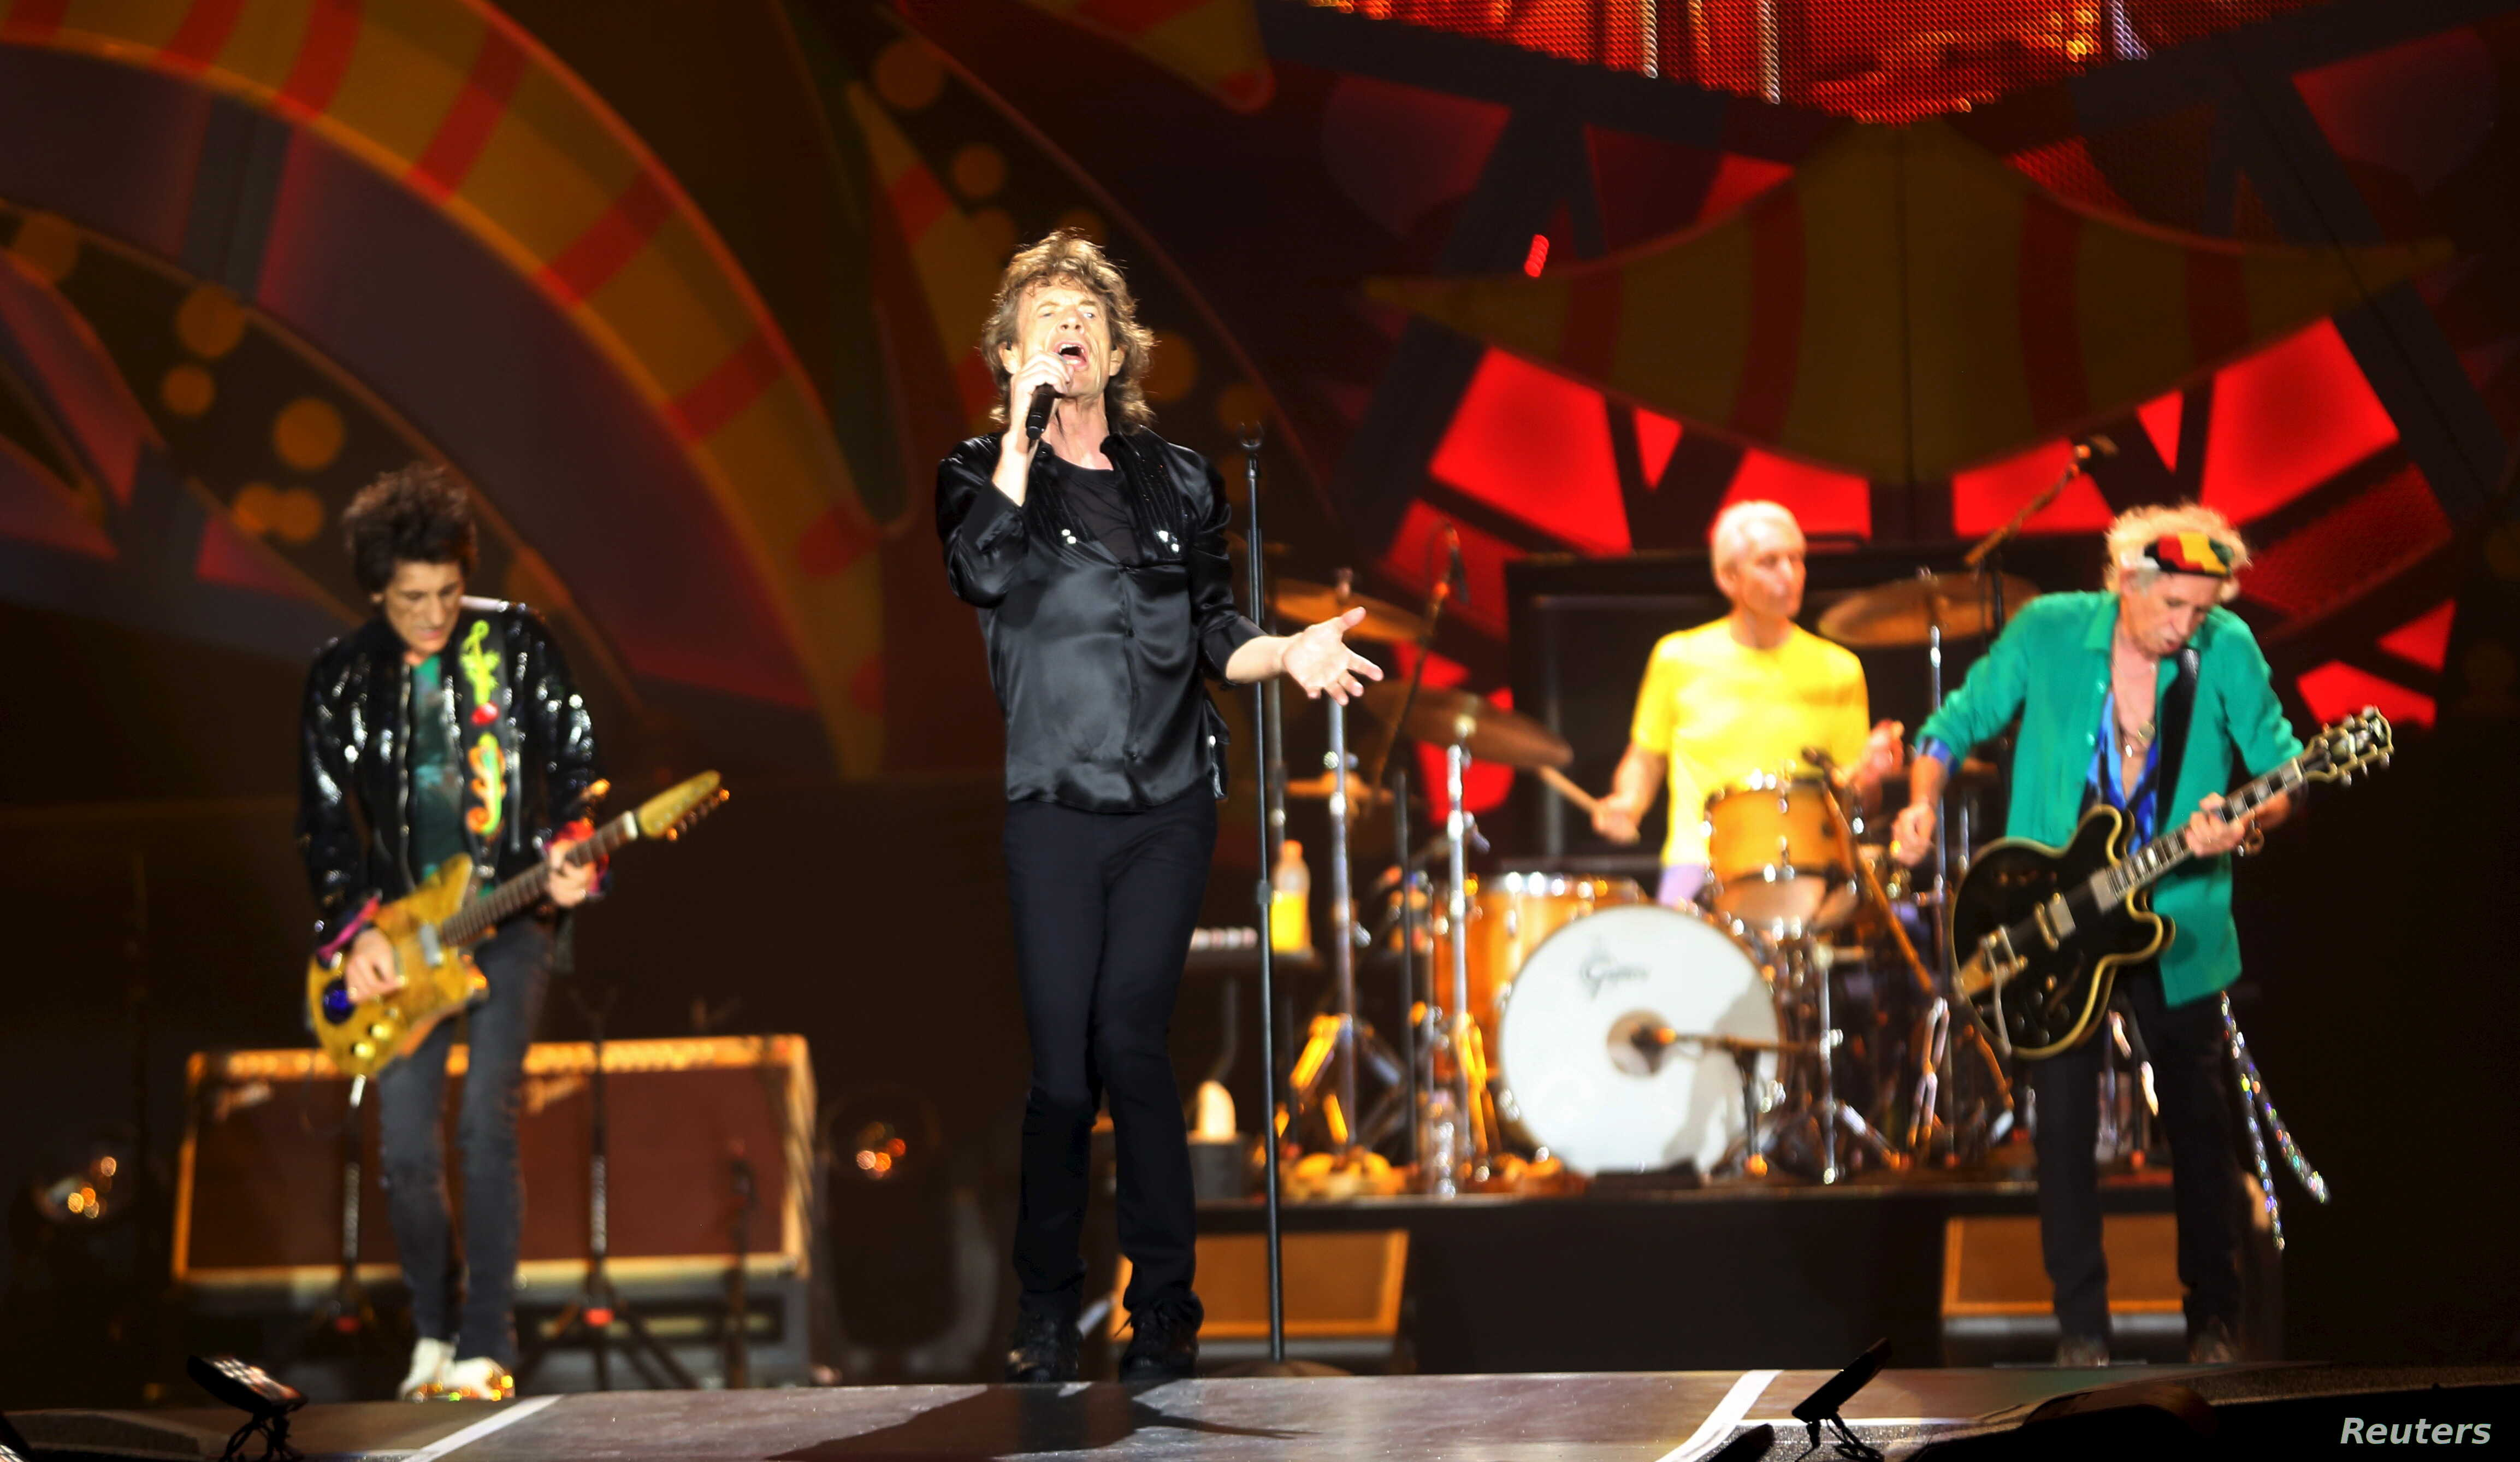 Rolling Stones on YouTube Invite Cubans to Free Concert